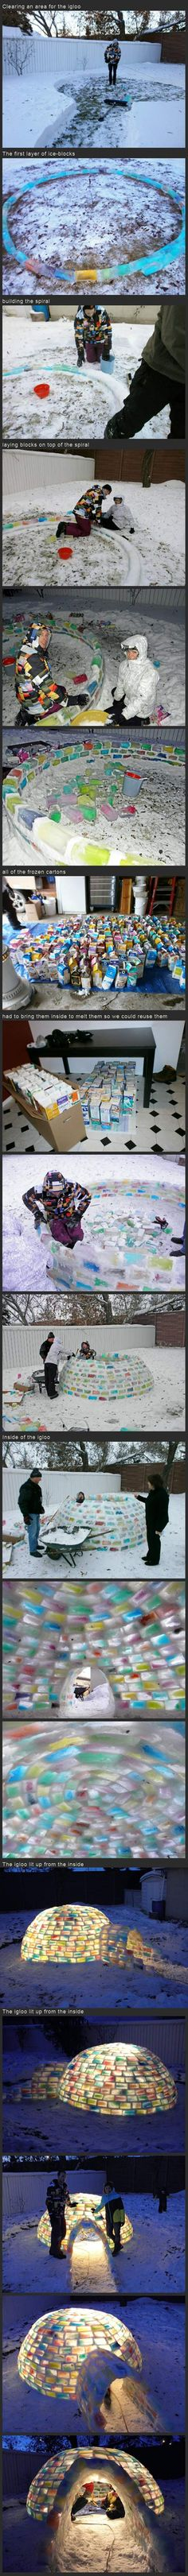 Igloo. Coolest thing ever.